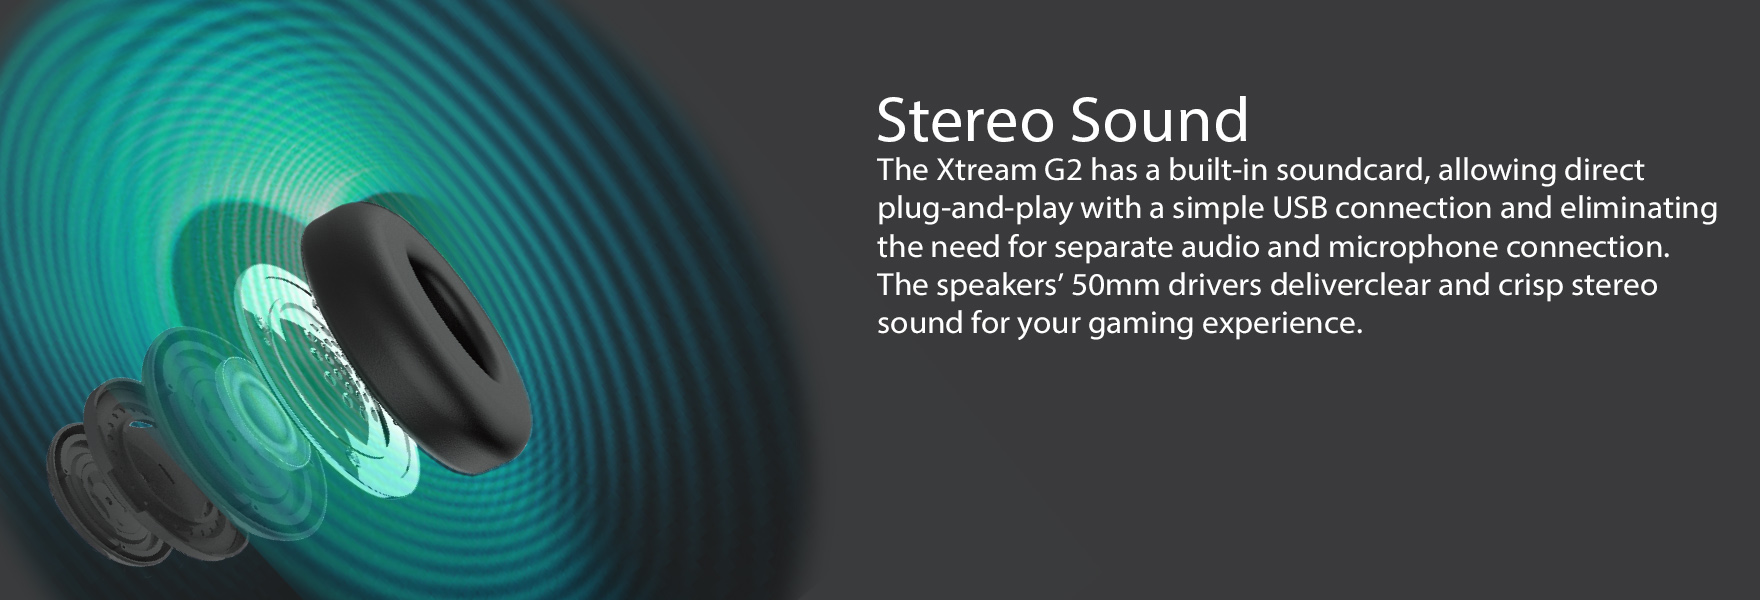 Stereo USB Gaming Headphone/Headset with Microphone